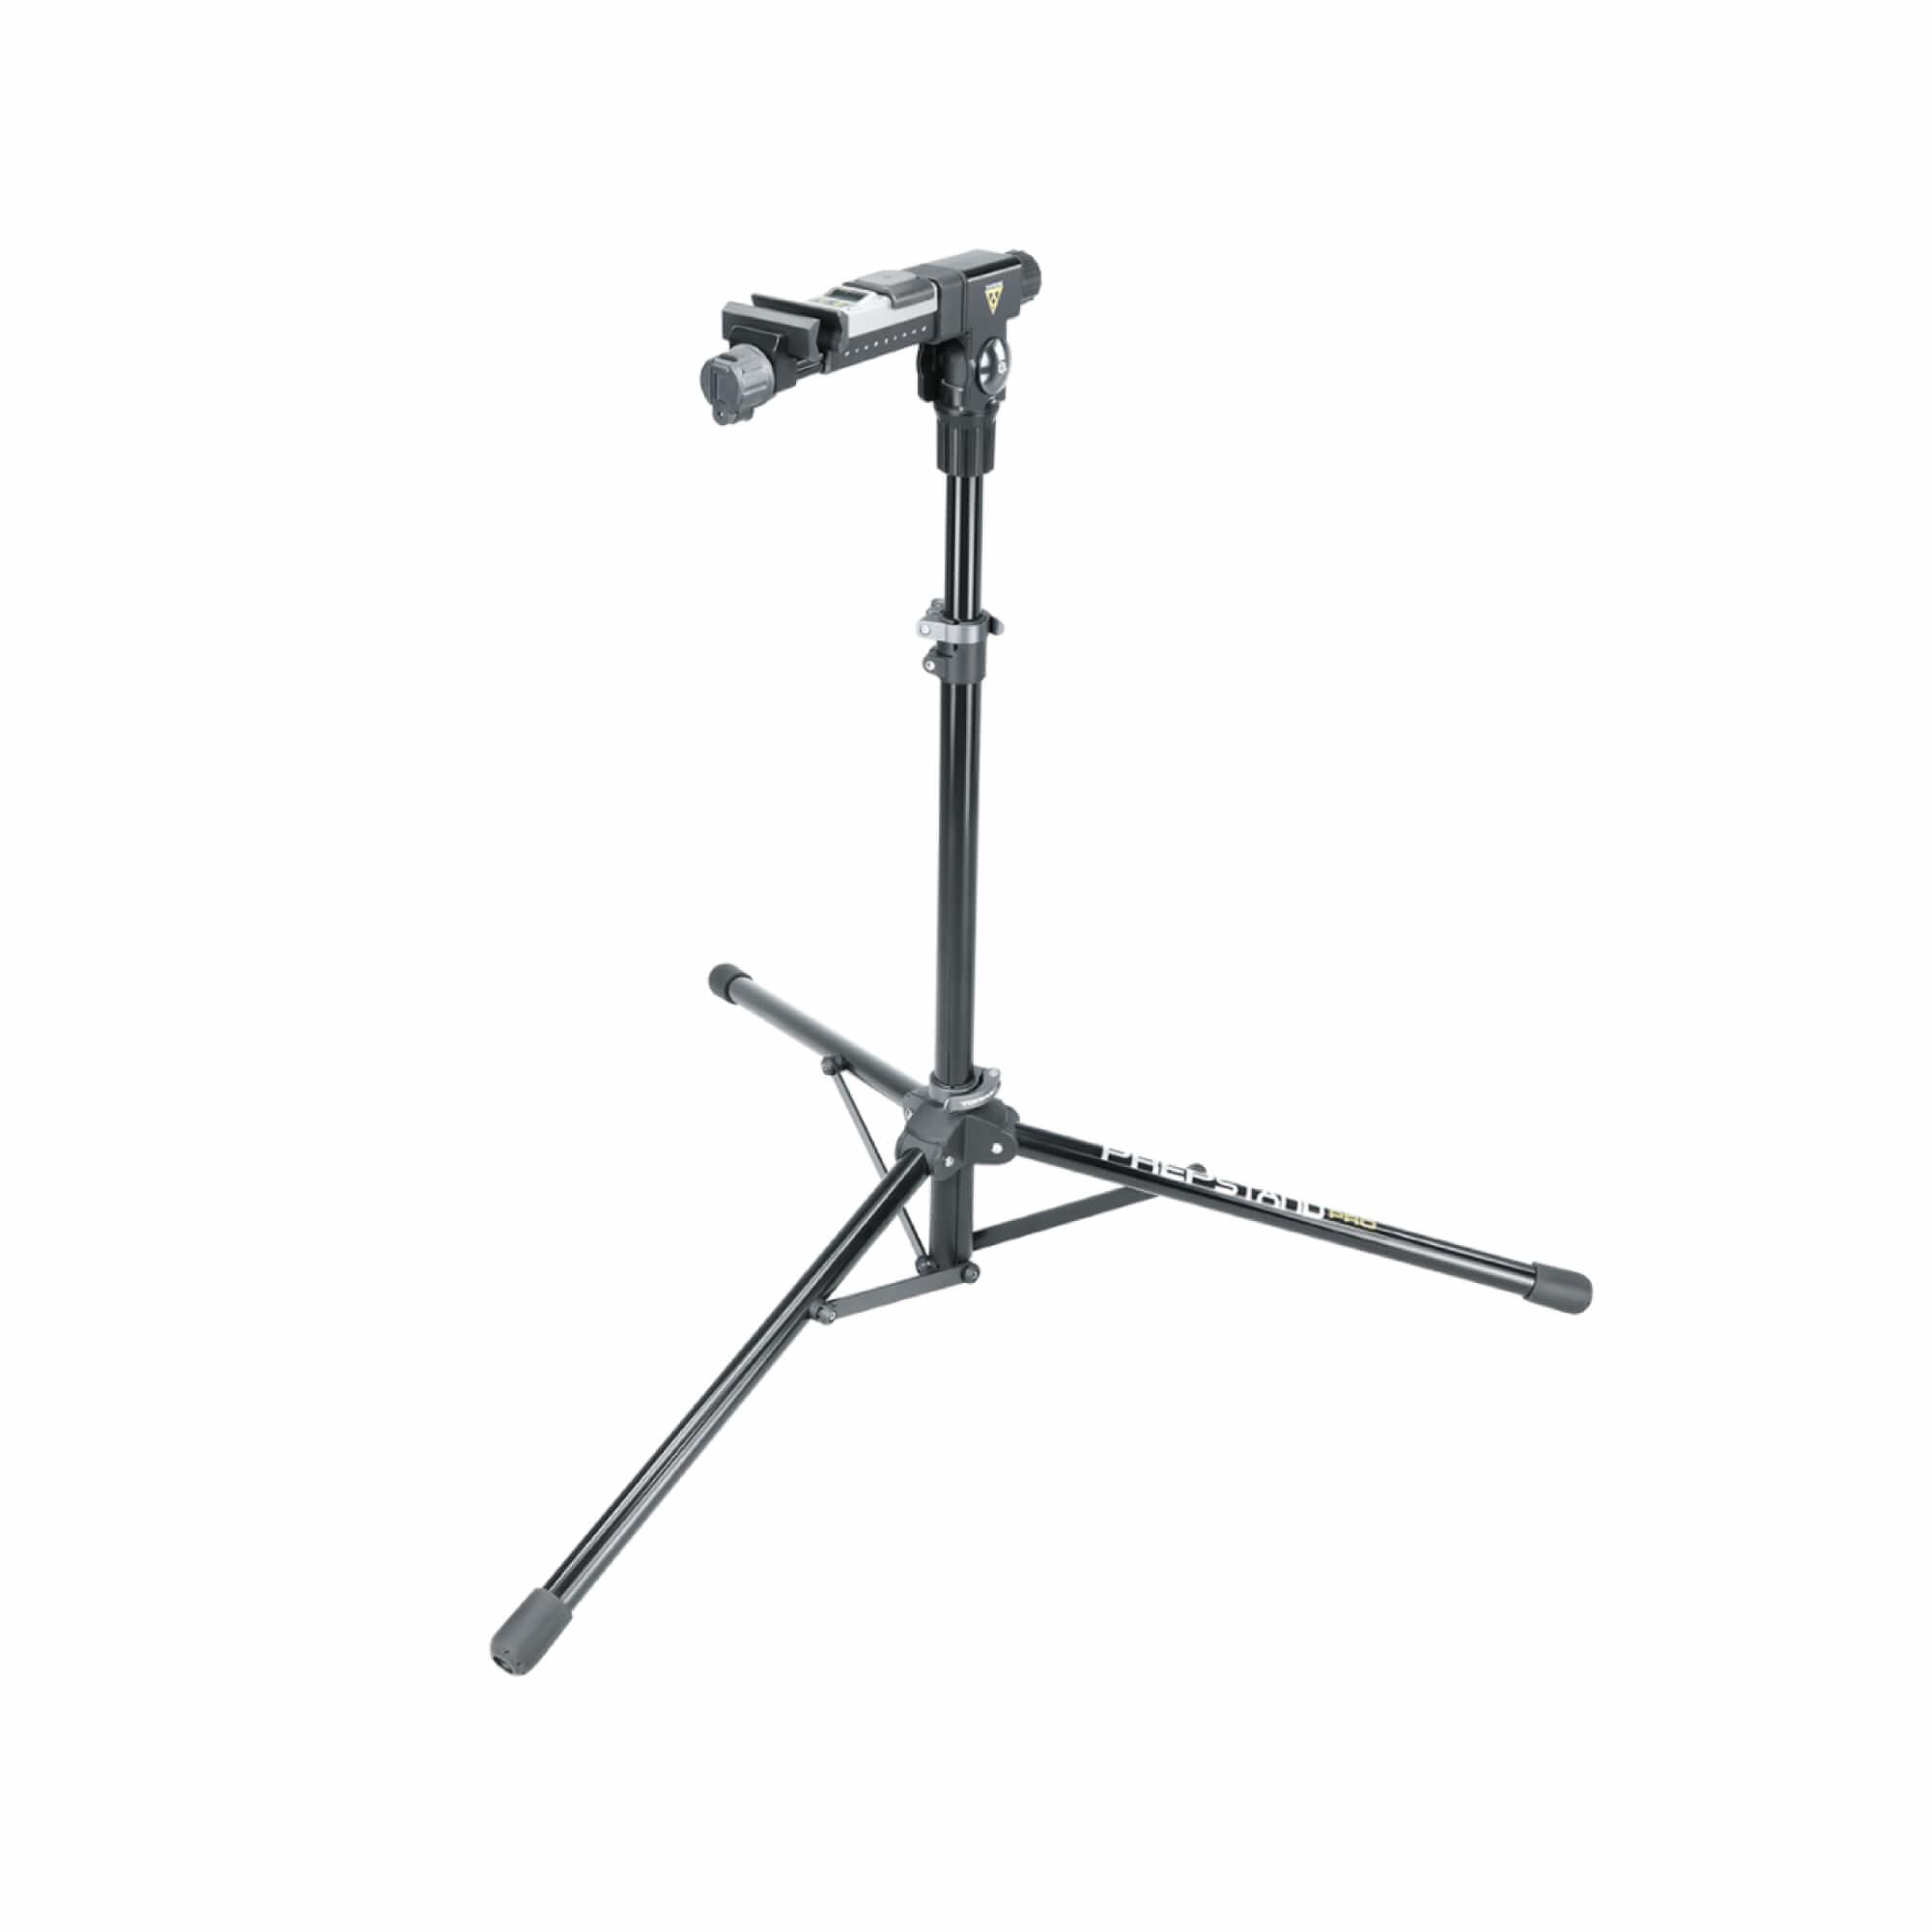 Prepstand Pro With Weight Scale-1